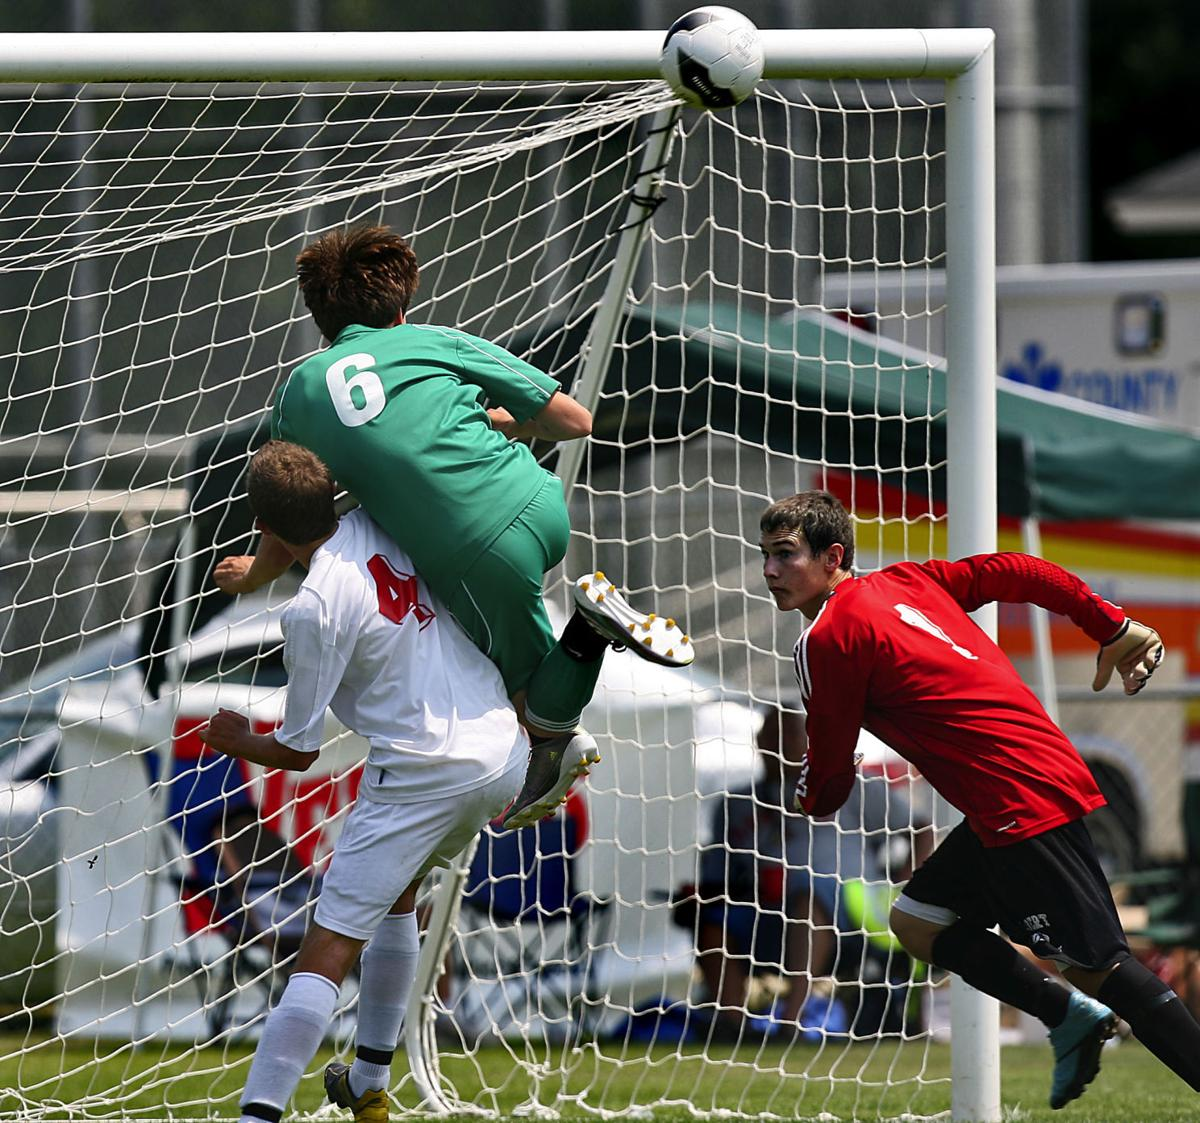 Bishop England boys win AA state soccer title